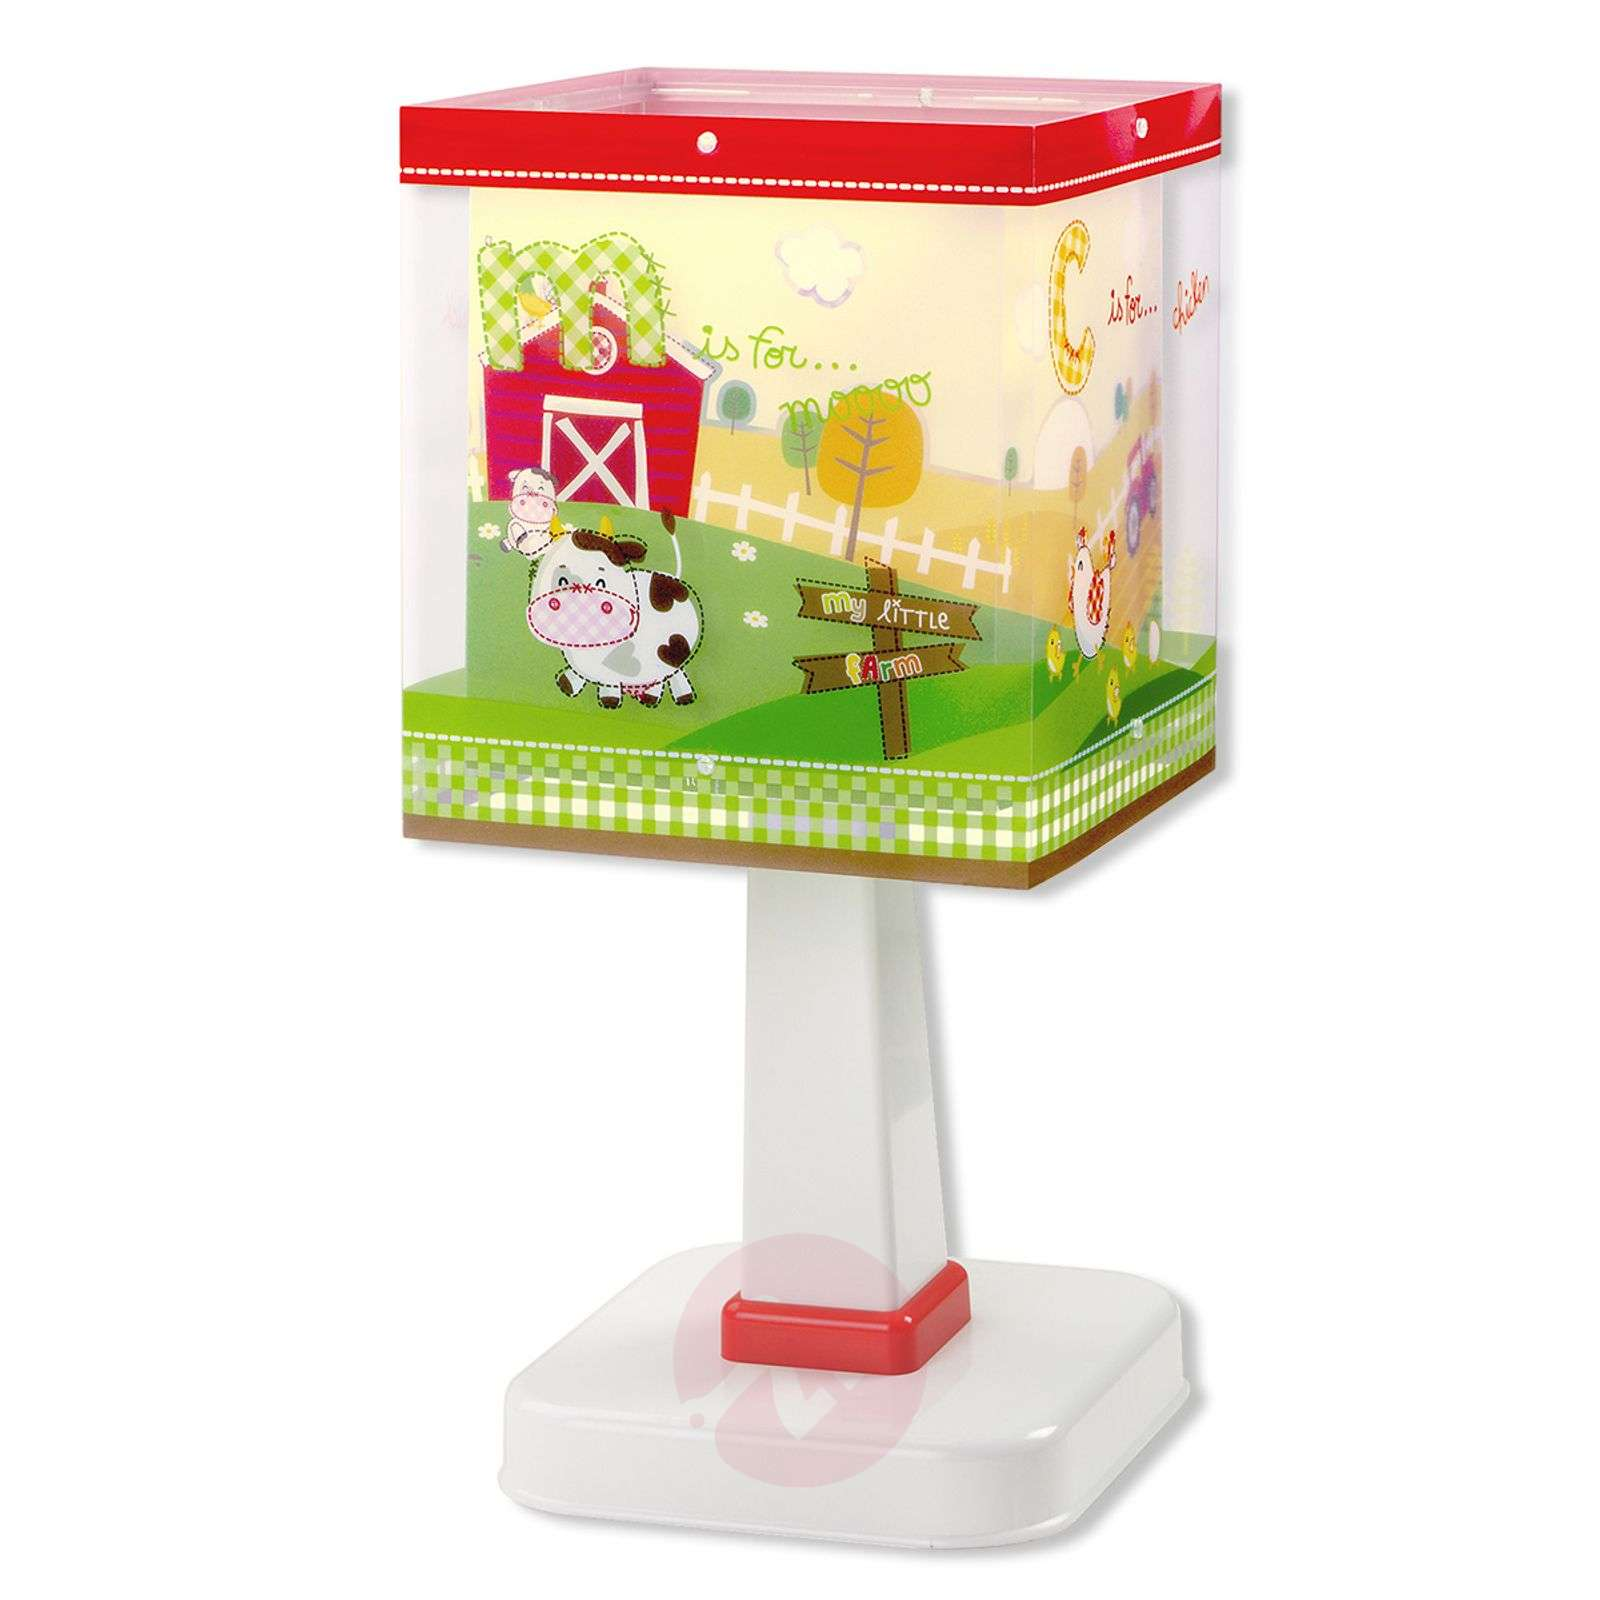 Childrens table lamp image collections coffee table design ideas my little farm childrens table lamp lights my little farm childrens table lamp 2507352 01 geotapseo geotapseo Images